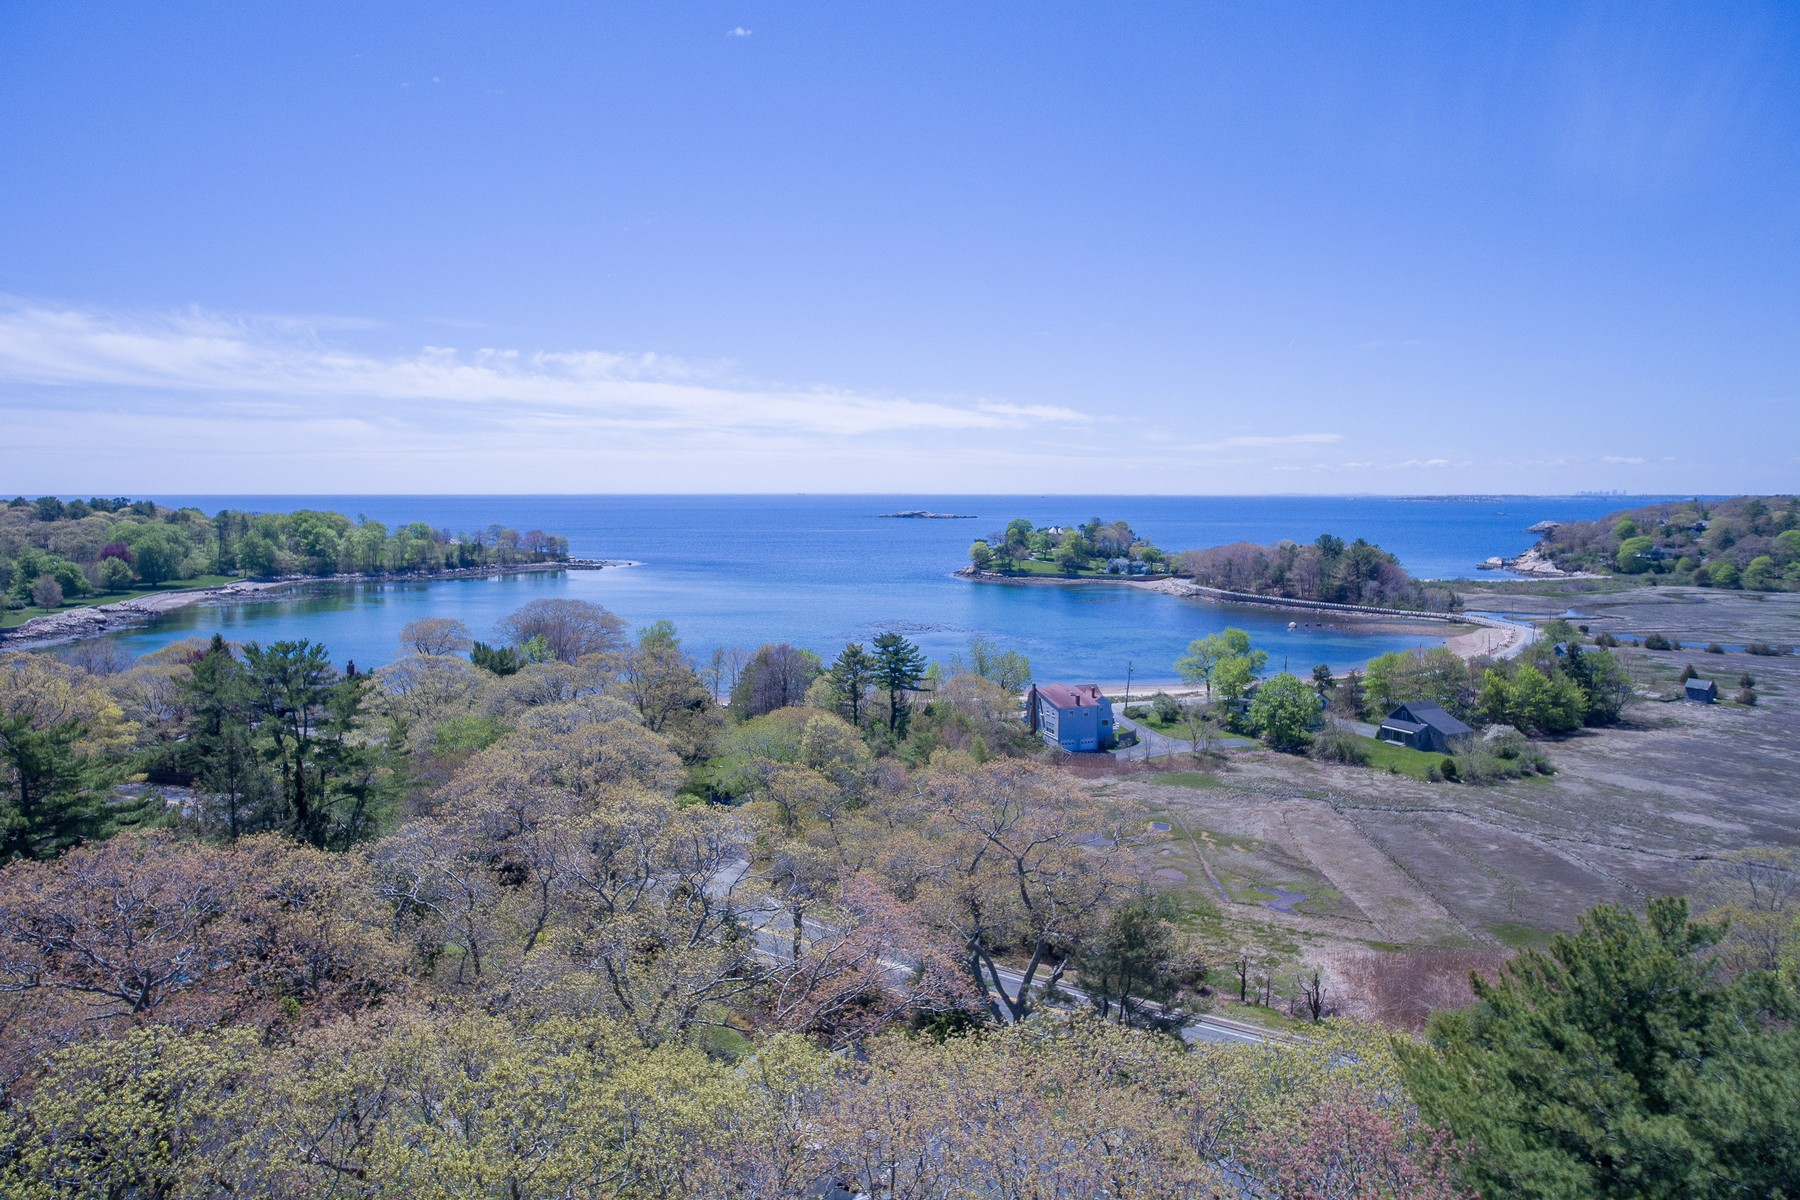 Single Family Home for Sale at Coveted Location with Commanding Views 21 University Lane Manchester, Massachusetts, 01944 United States